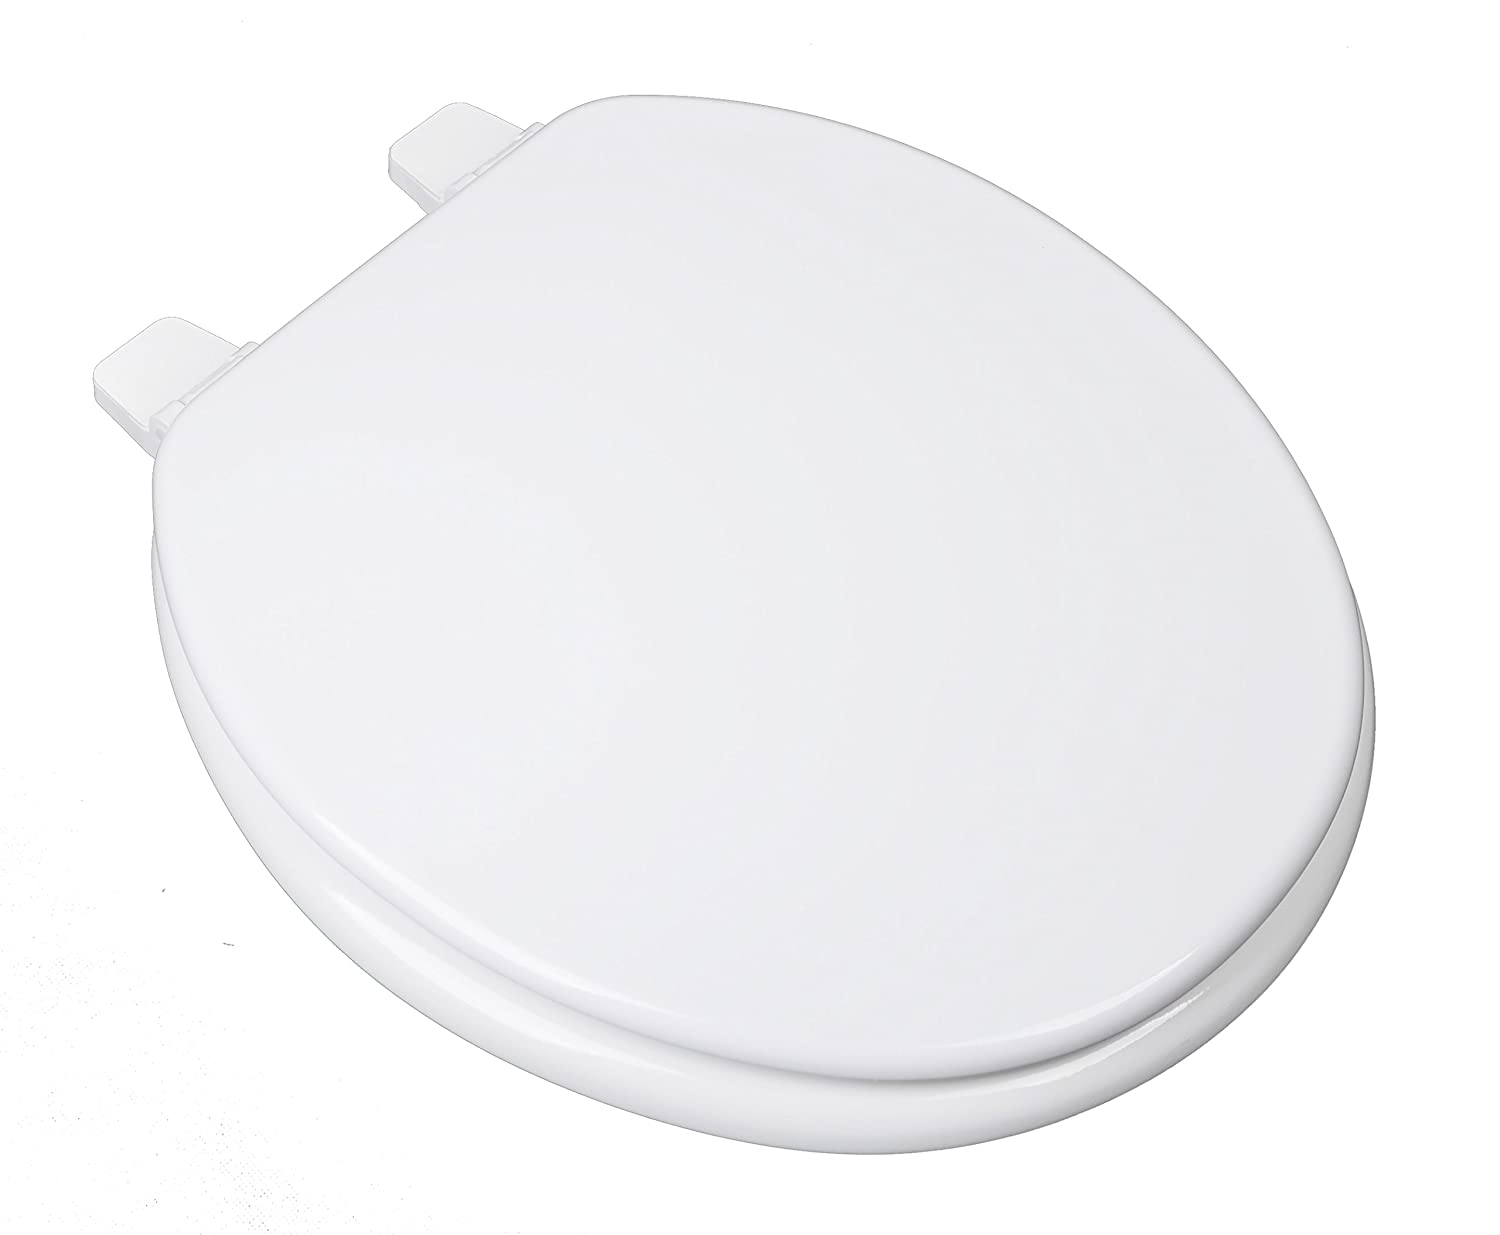 BathDecor 1F1R2-00 Builder Grade Molded Wood Round Toilet Seat with Adjustable Hinge, White